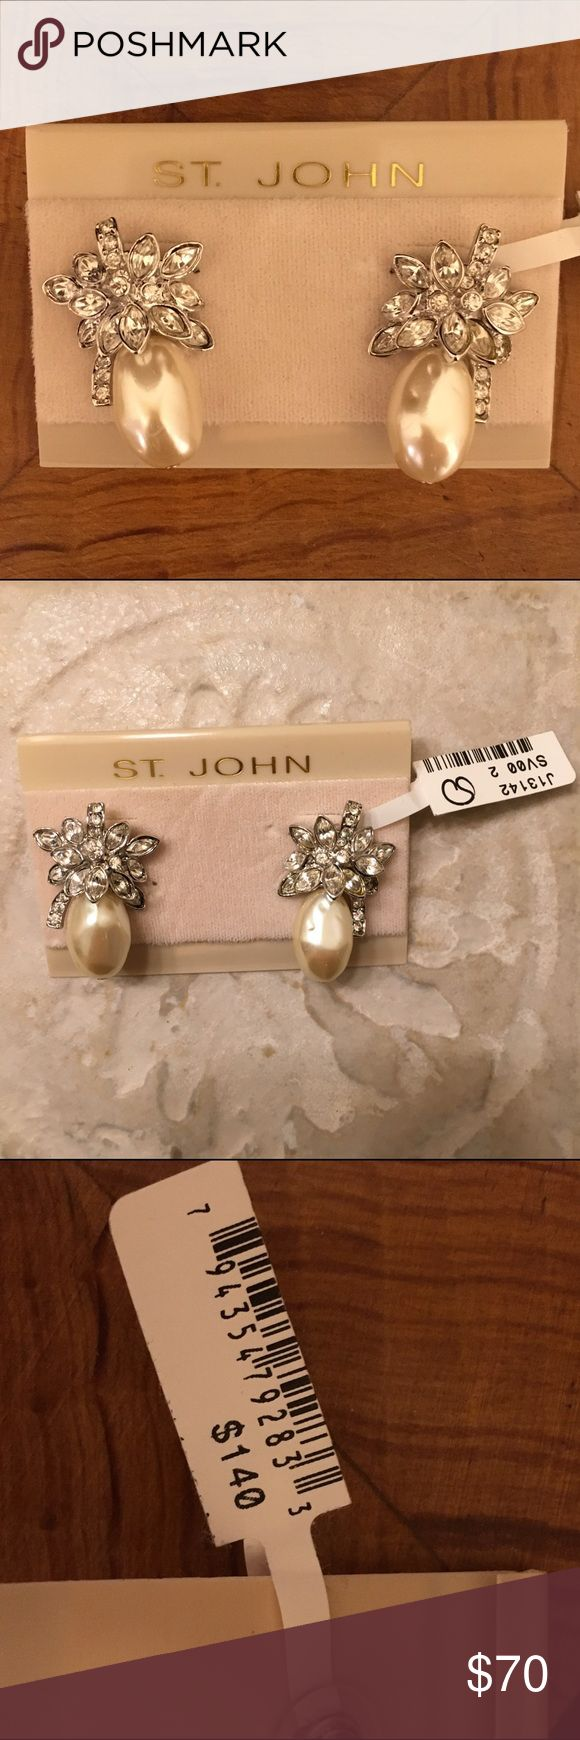 Dazzling St. John Pearl earrings Given to me over a decade ago. These earrings are a true classic statement. Never worn. St. John Jewelry Earrings